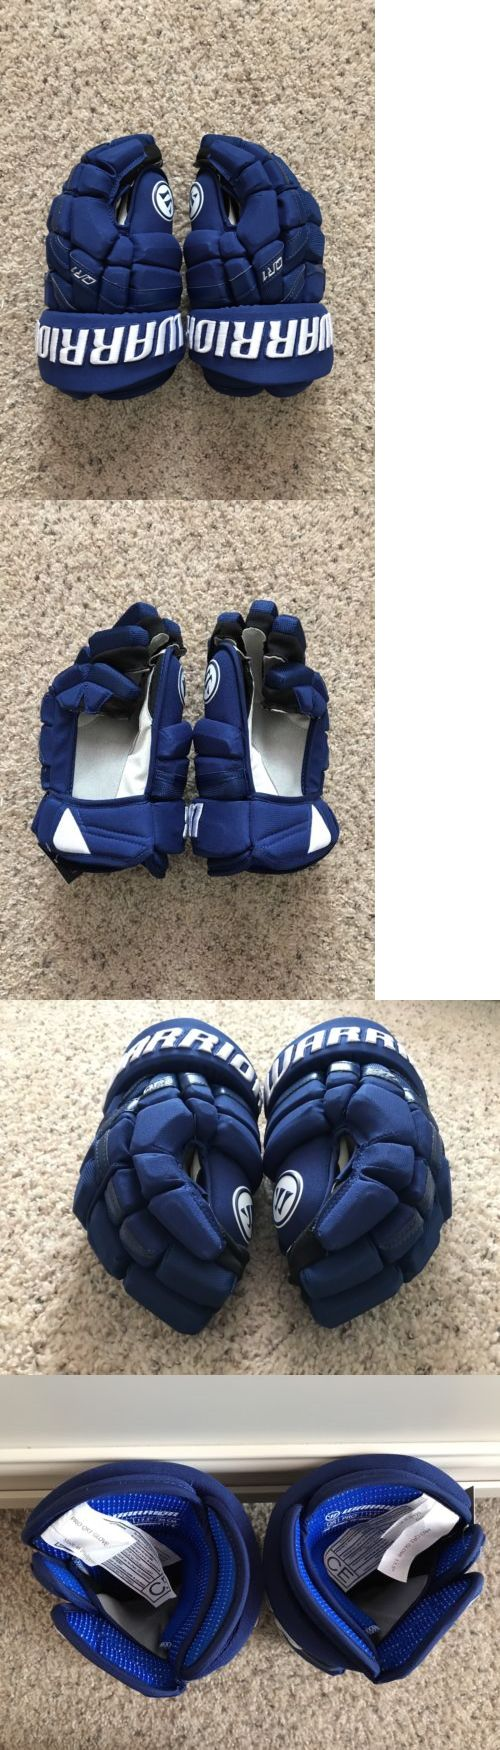 Gloves 20853: Warrior Pro Stock Hockey Gloves 13.5 Covert Qr1 Pro - Winter Classic Montreal -> BUY IT NOW ONLY: $90 on eBay!